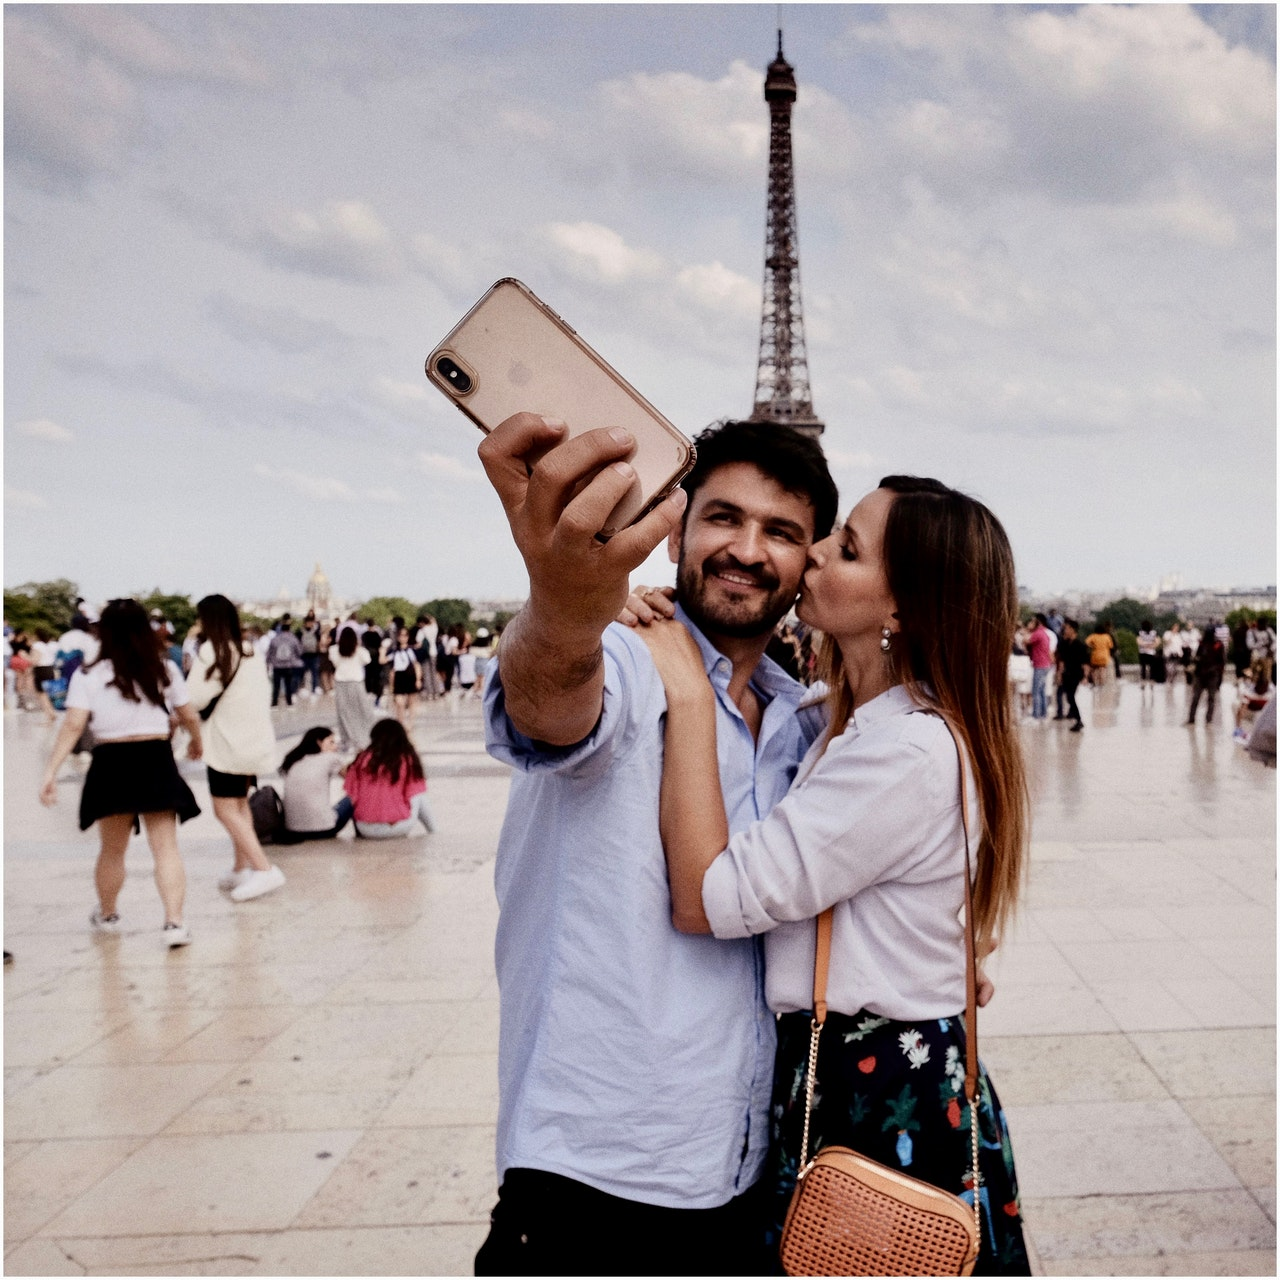 Couple taking a photo at the Eiffel Tower